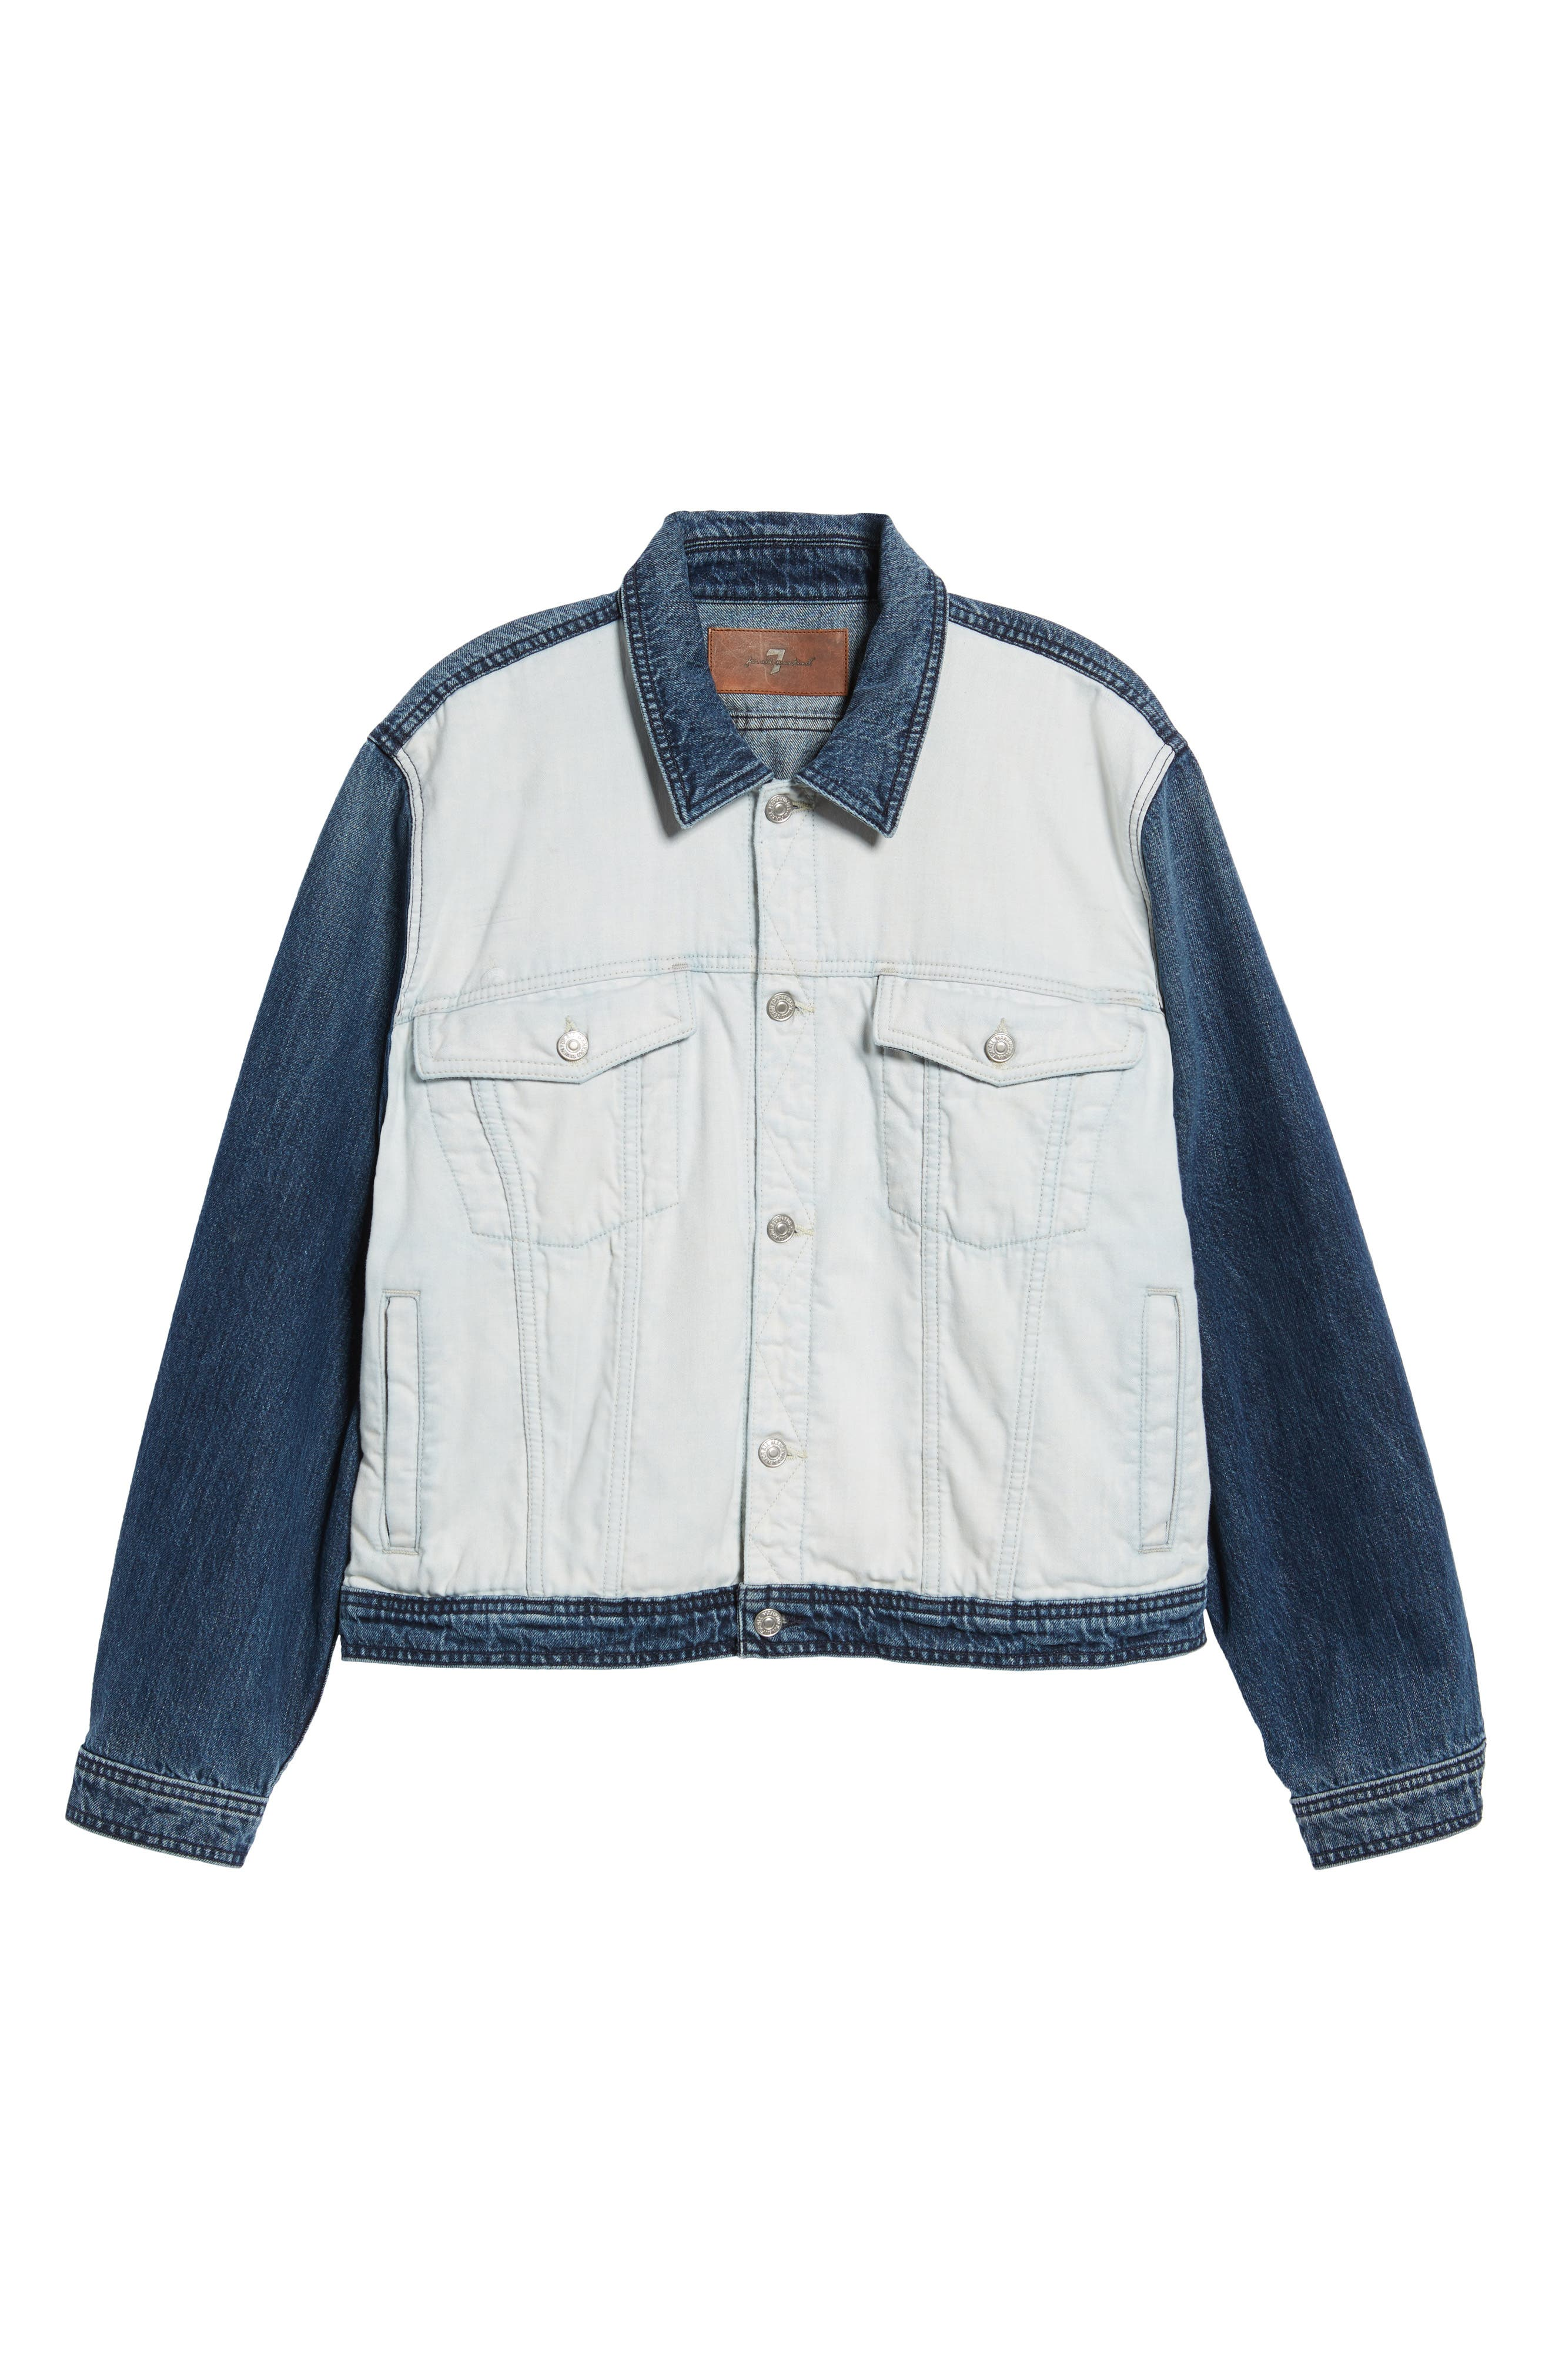 7 FOR ALL MANKIND<SUP>®</SUP>, Inside Out Trucker Jacket, Alternate thumbnail 5, color, VINTAGE BLUE